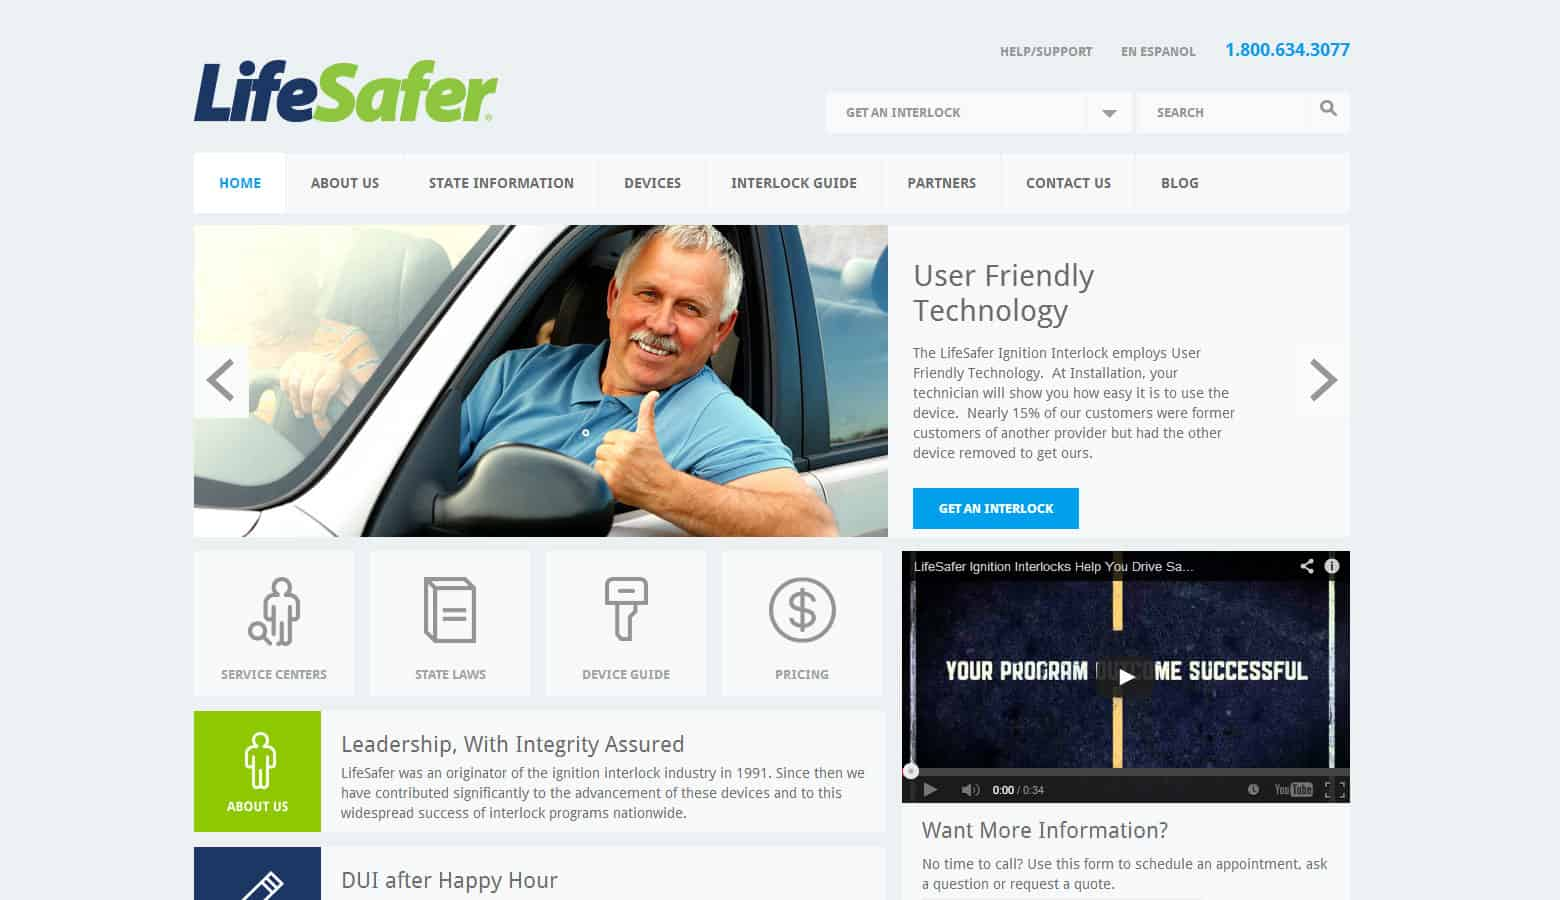 LifeSafer